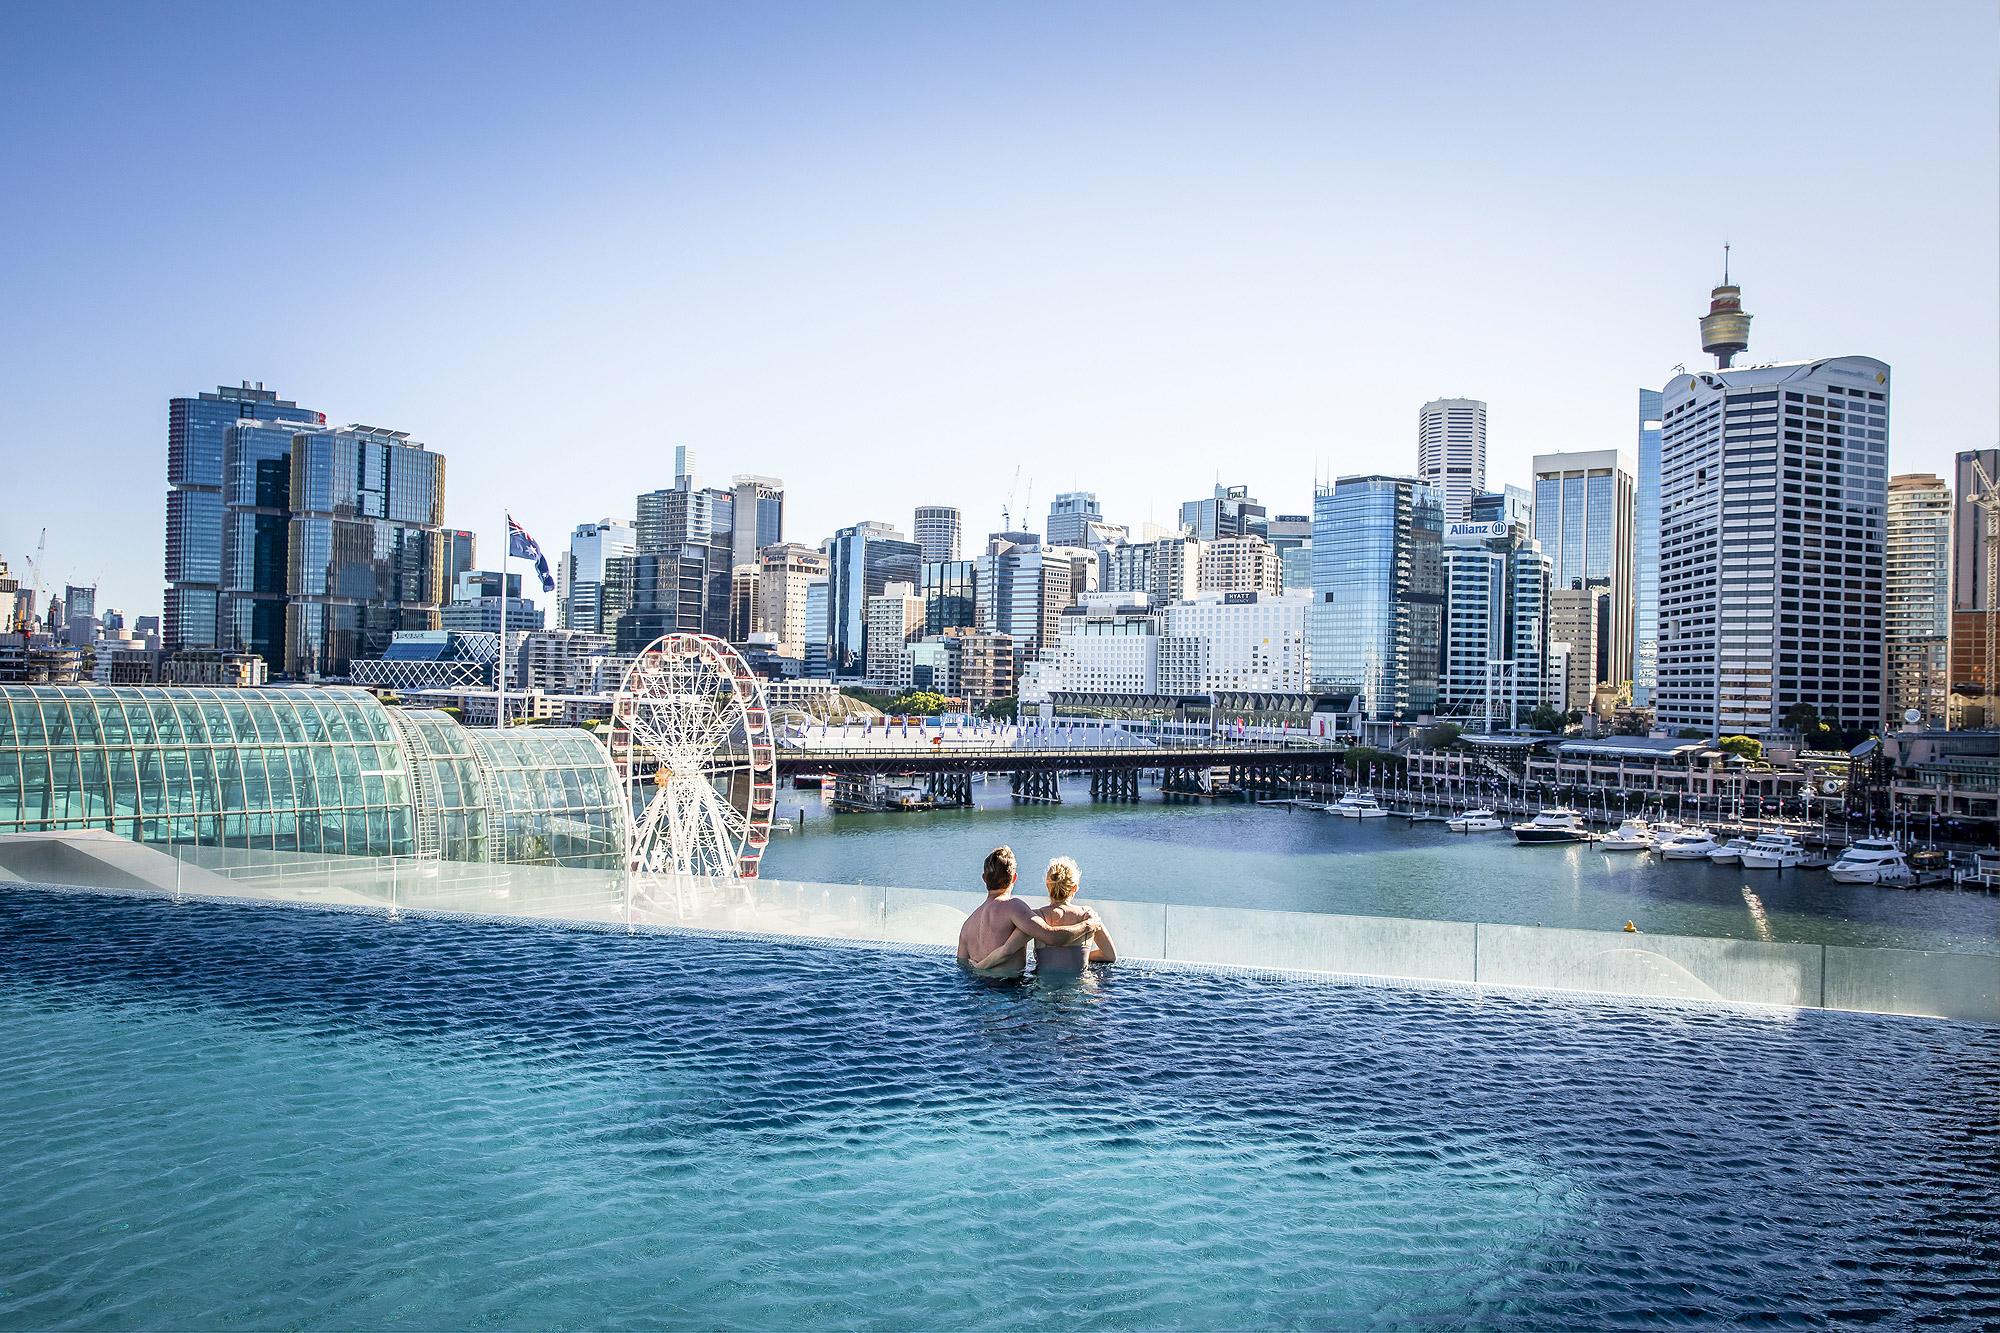 Sofitel Sydney's rooftop pool with views across Darling Harbour